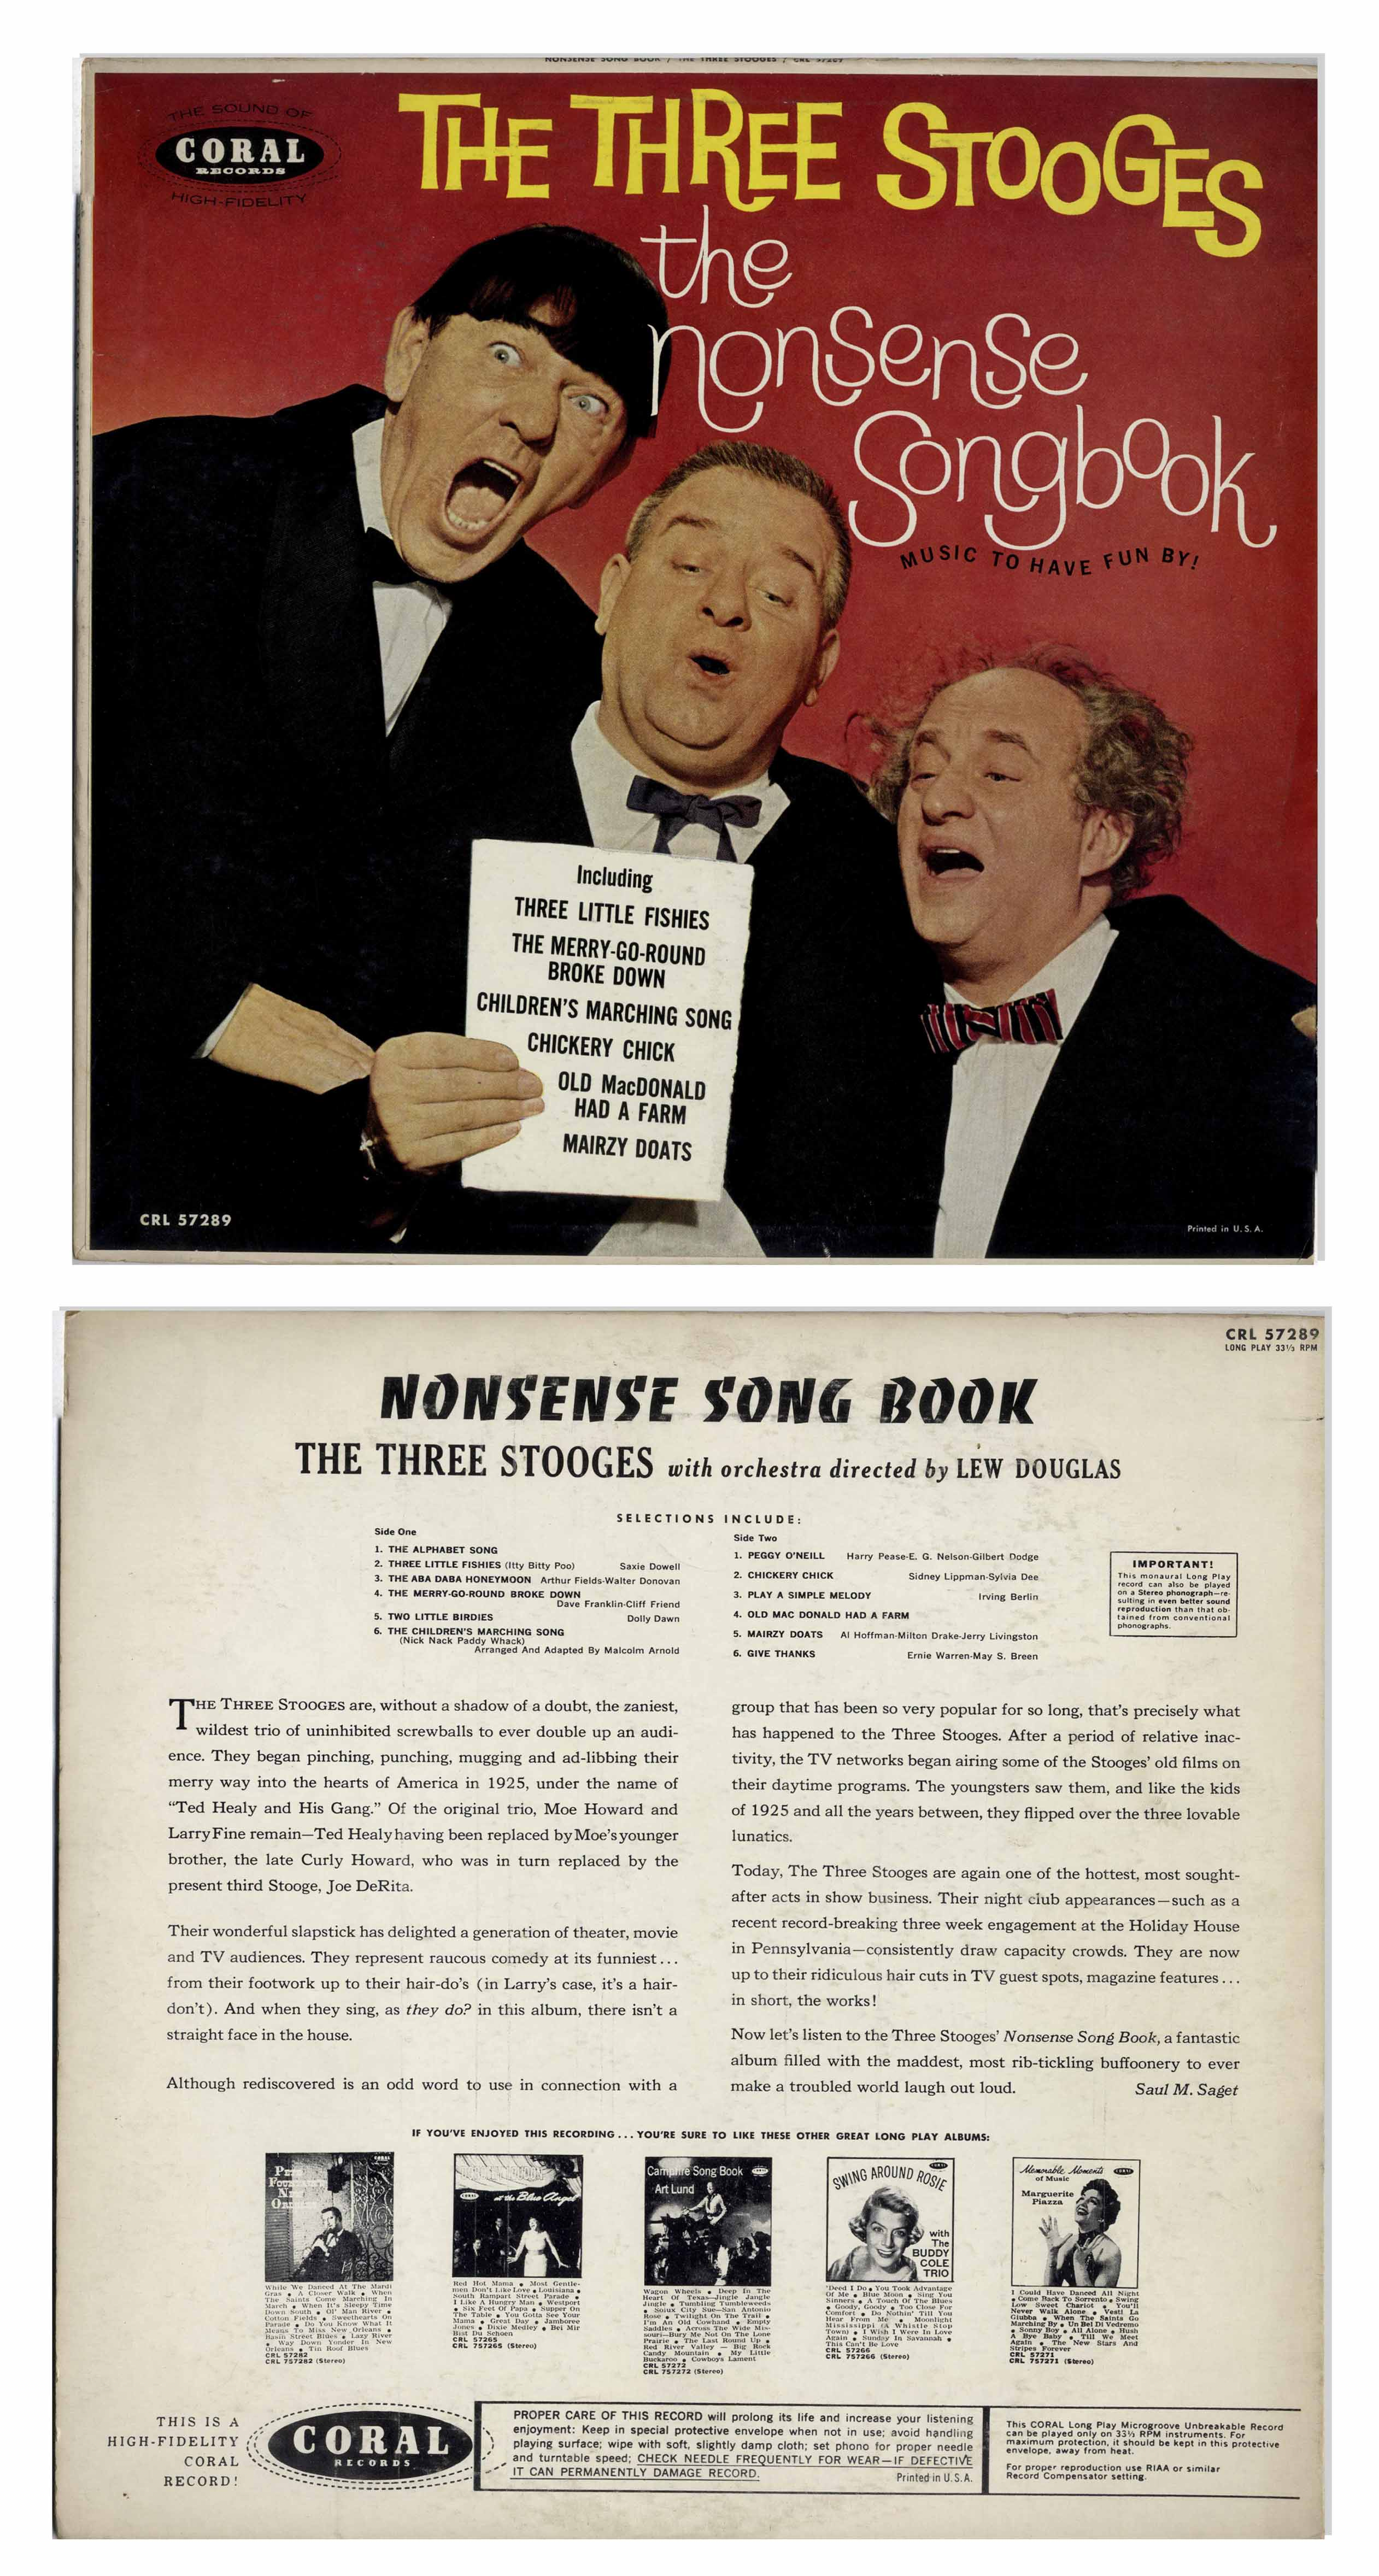 Lot Detail Lot Of 11 Vinyl Records With Three Stooges Recordings For Children Circa 1960s With Curly Joe Plus Flyer Promoting Their Albums Not Played But Albums Appear